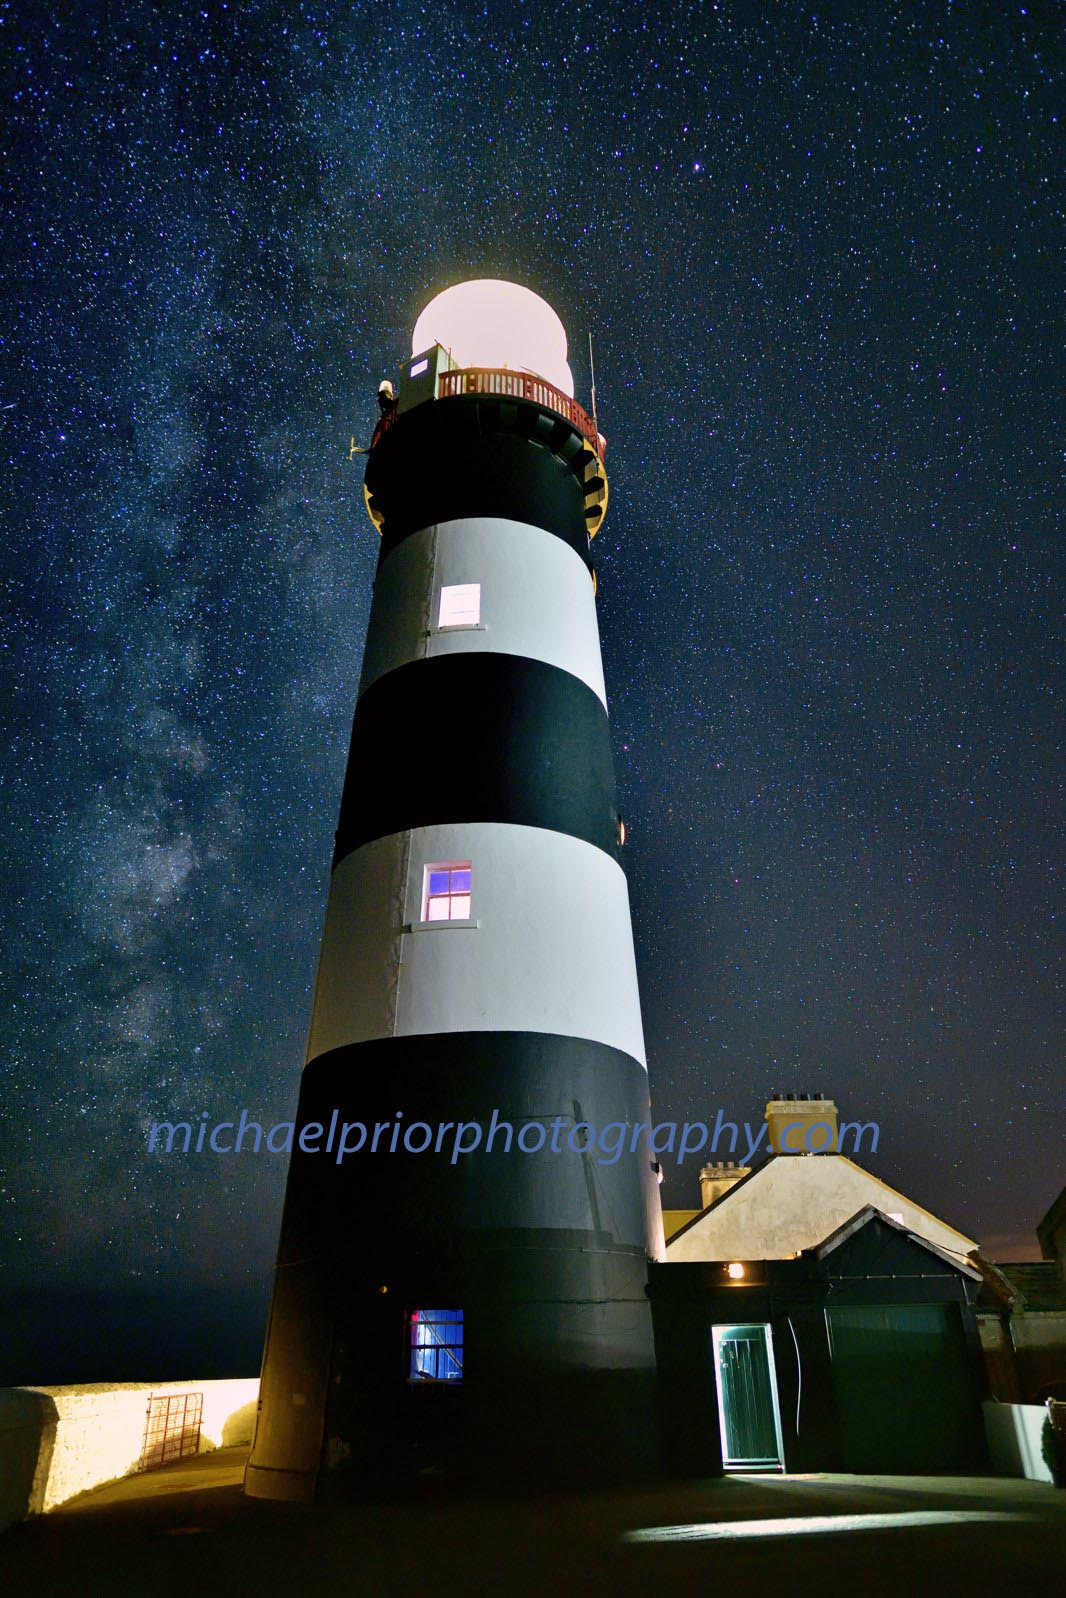 The Oldhead Lighthouse Of Kinsale Under A Blanket Of Stars - Michael Prior Photography